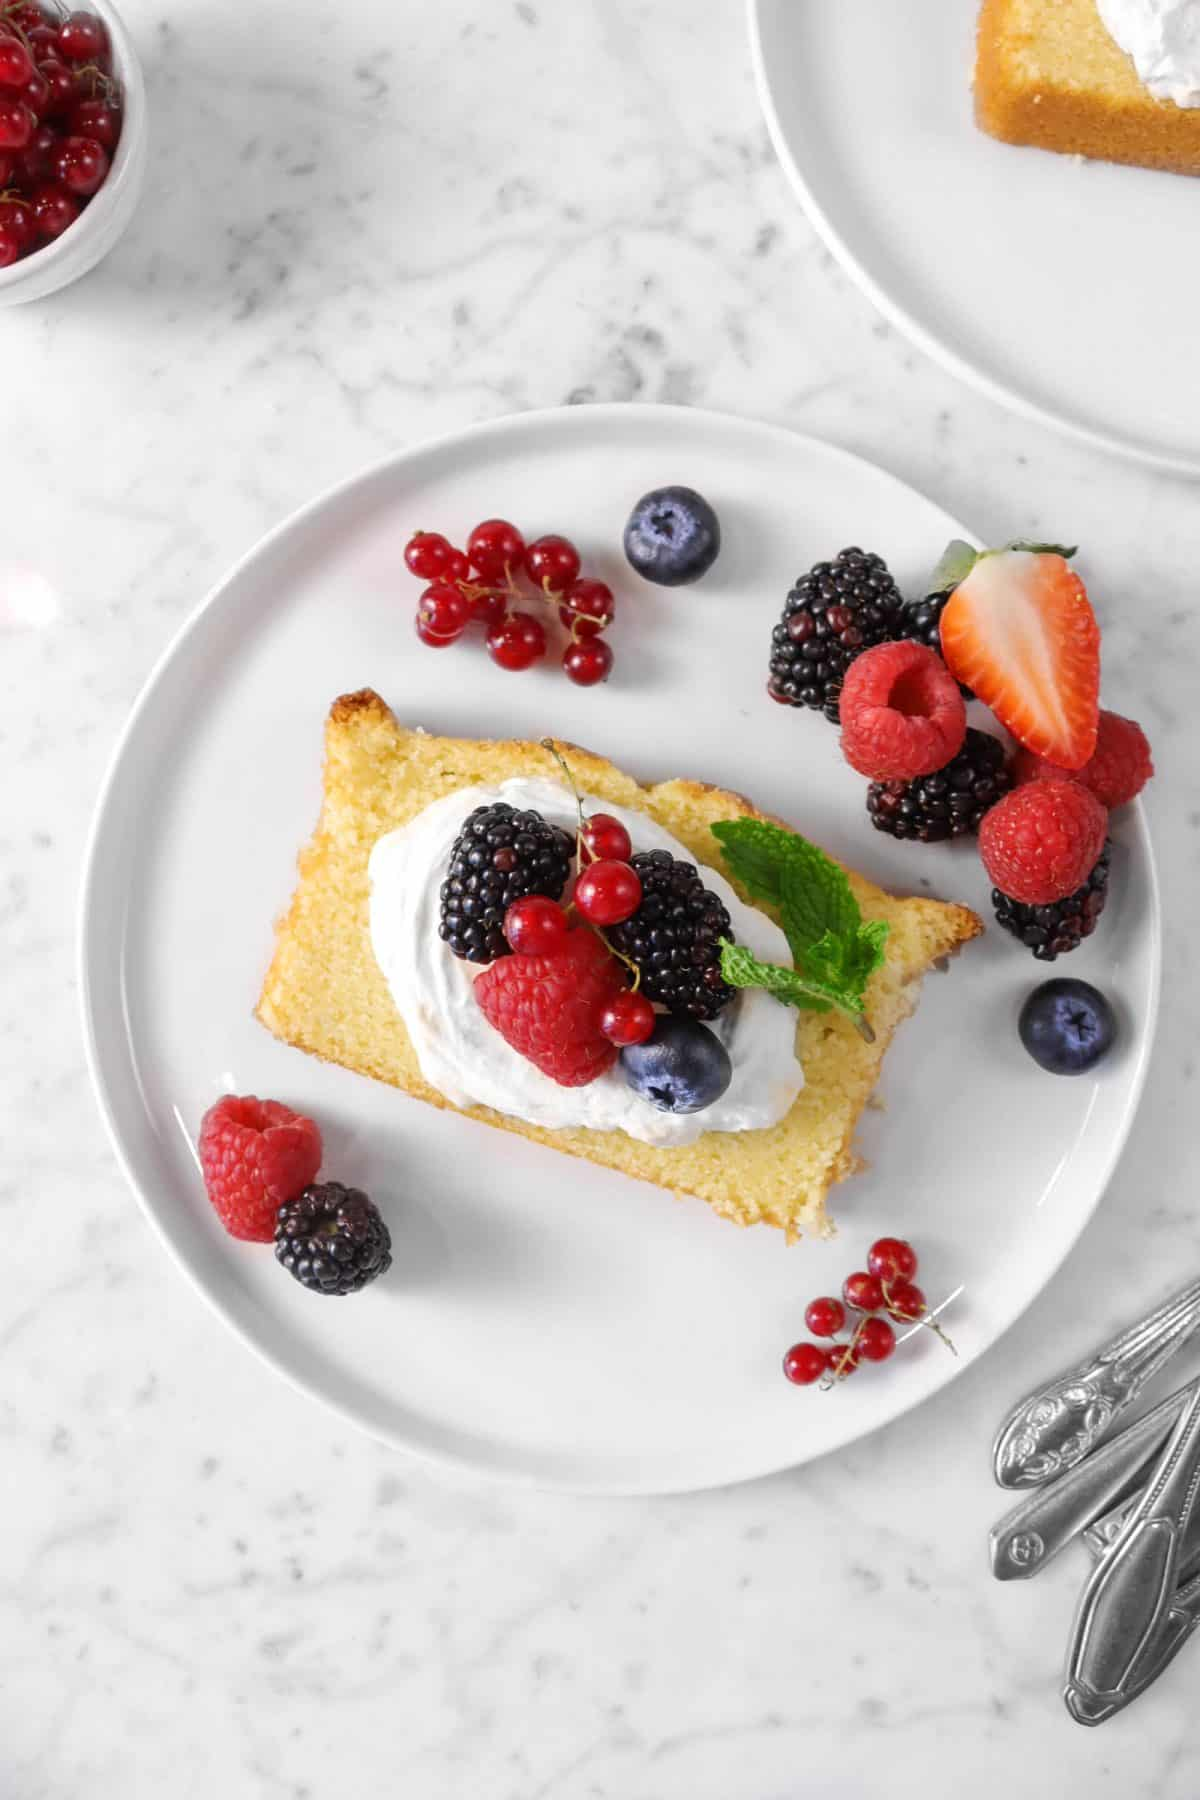 slice of pound cake with berries and chantilly cream on a white plate